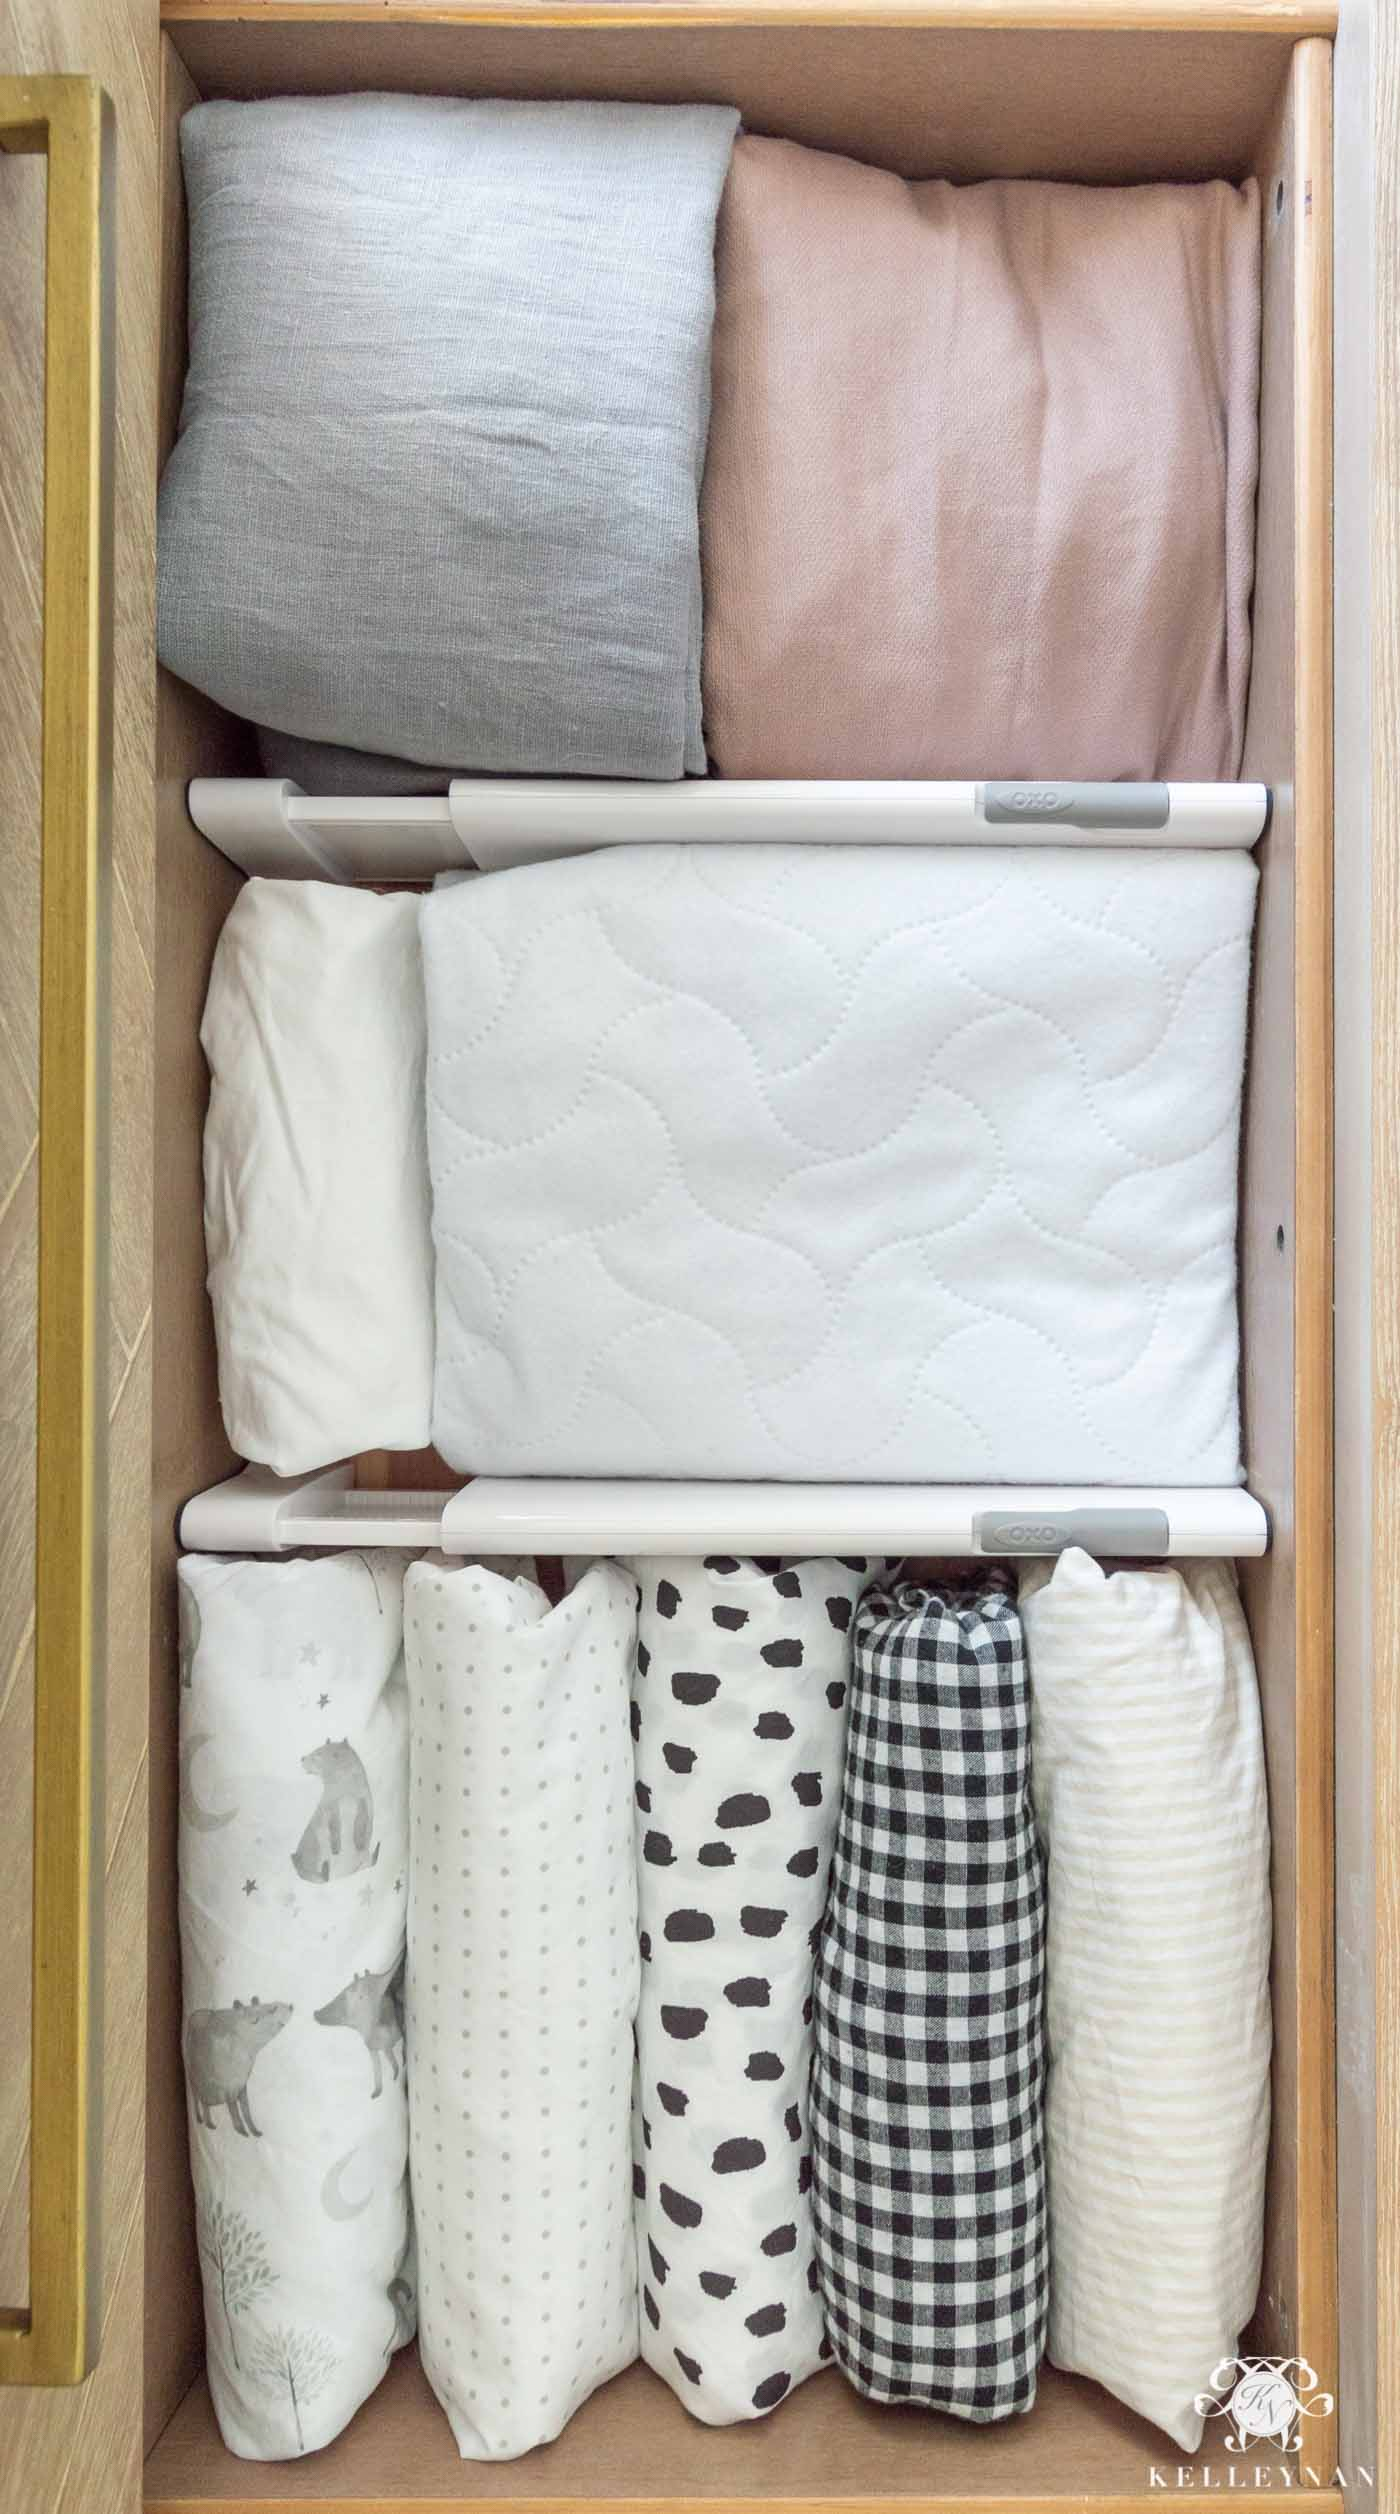 Nursery Dresser Organization: How to Organize Your Baby's Clothes & Essentials